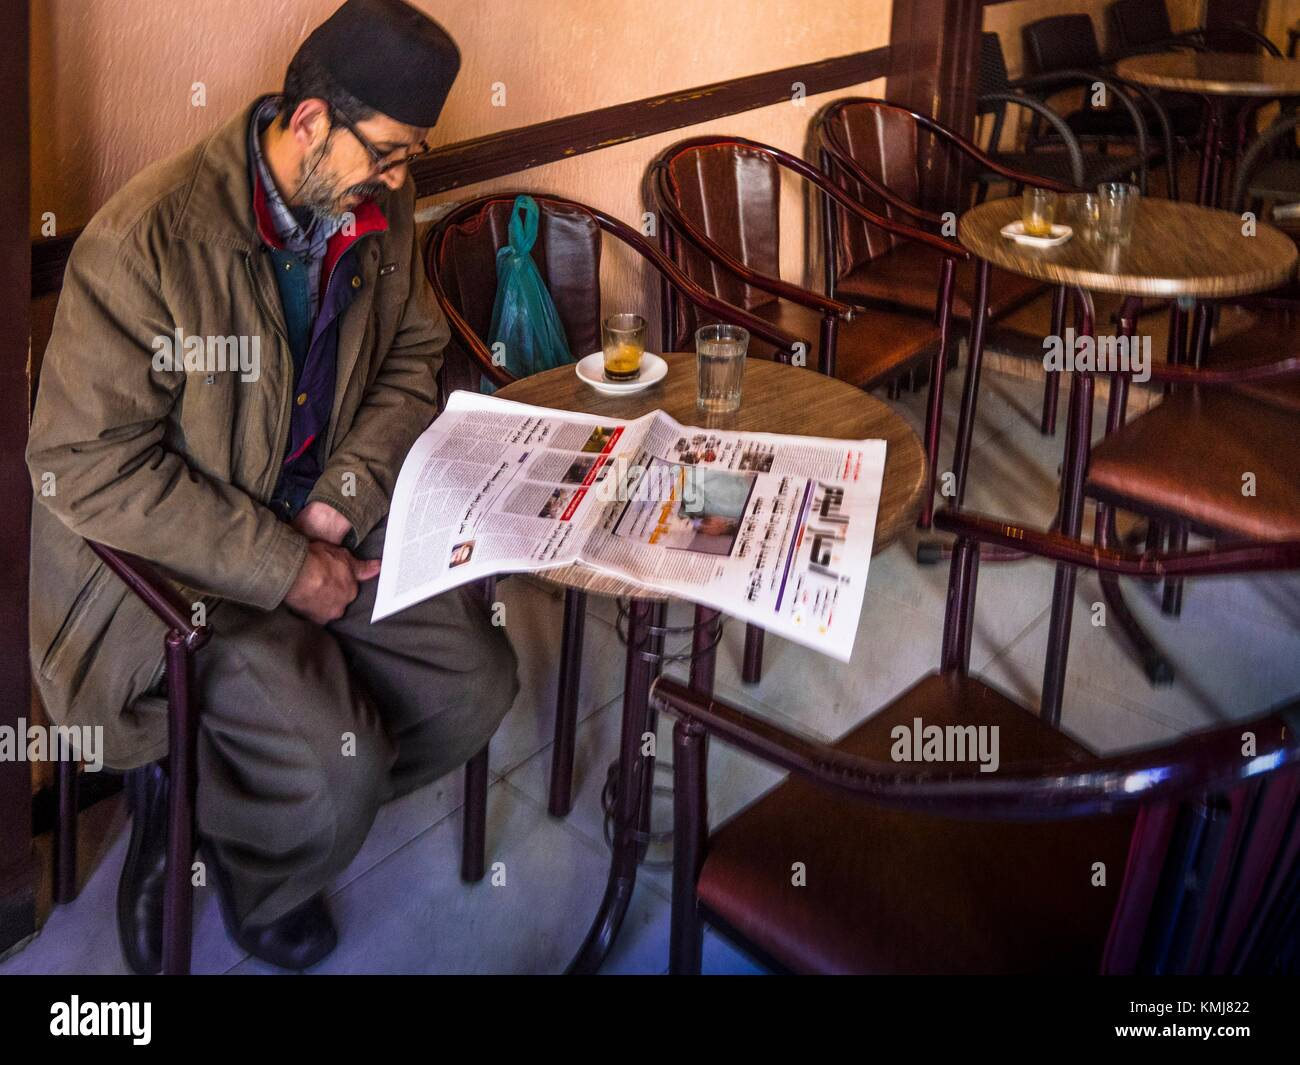 Morocco, Fes, Morning news in a Café at Fes. - Stock Image